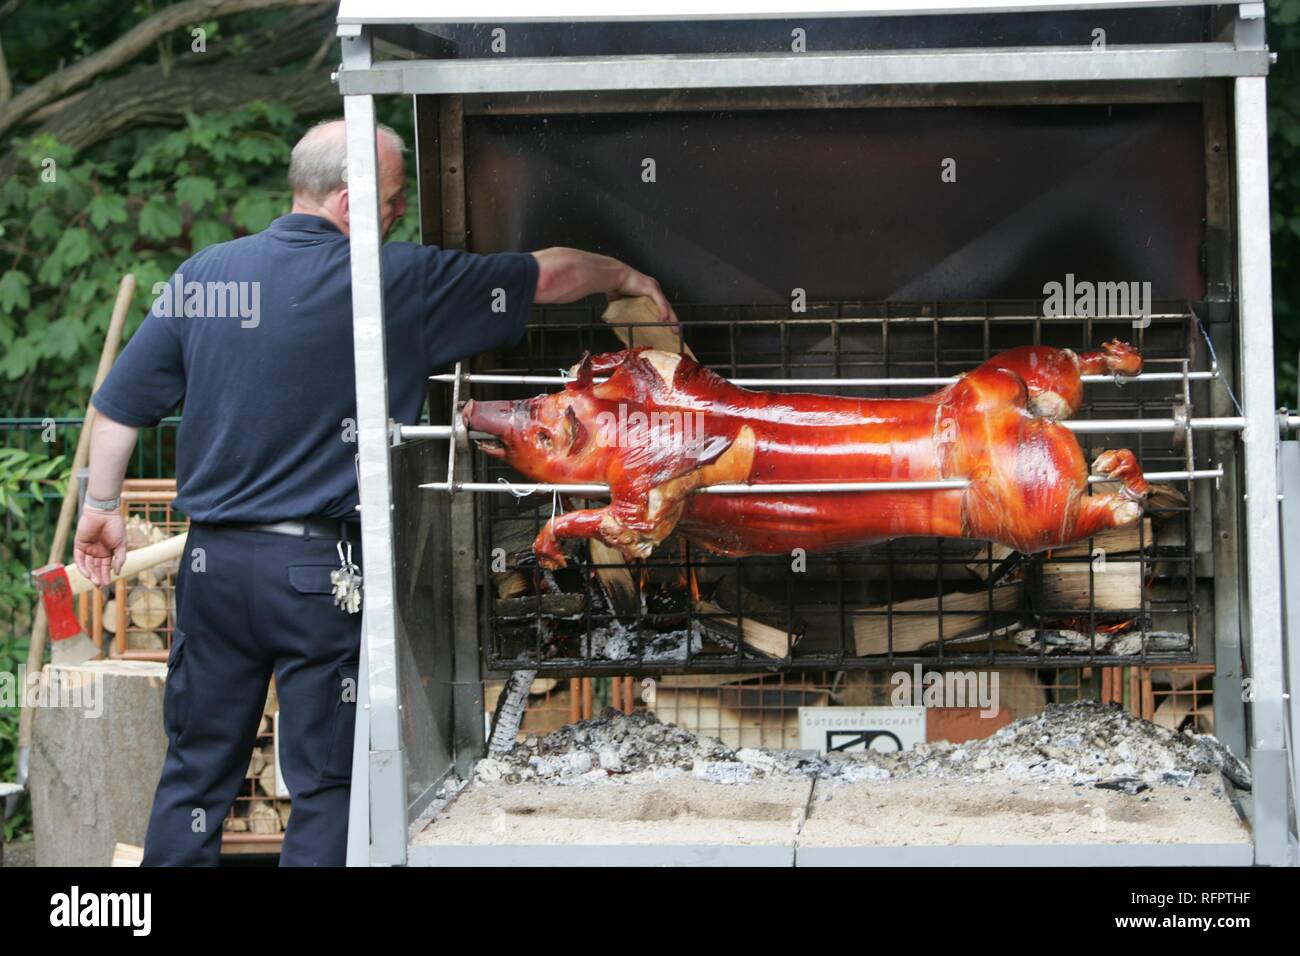 Open day at a volounteer fire brigade, Essen, Germany - Stock Image